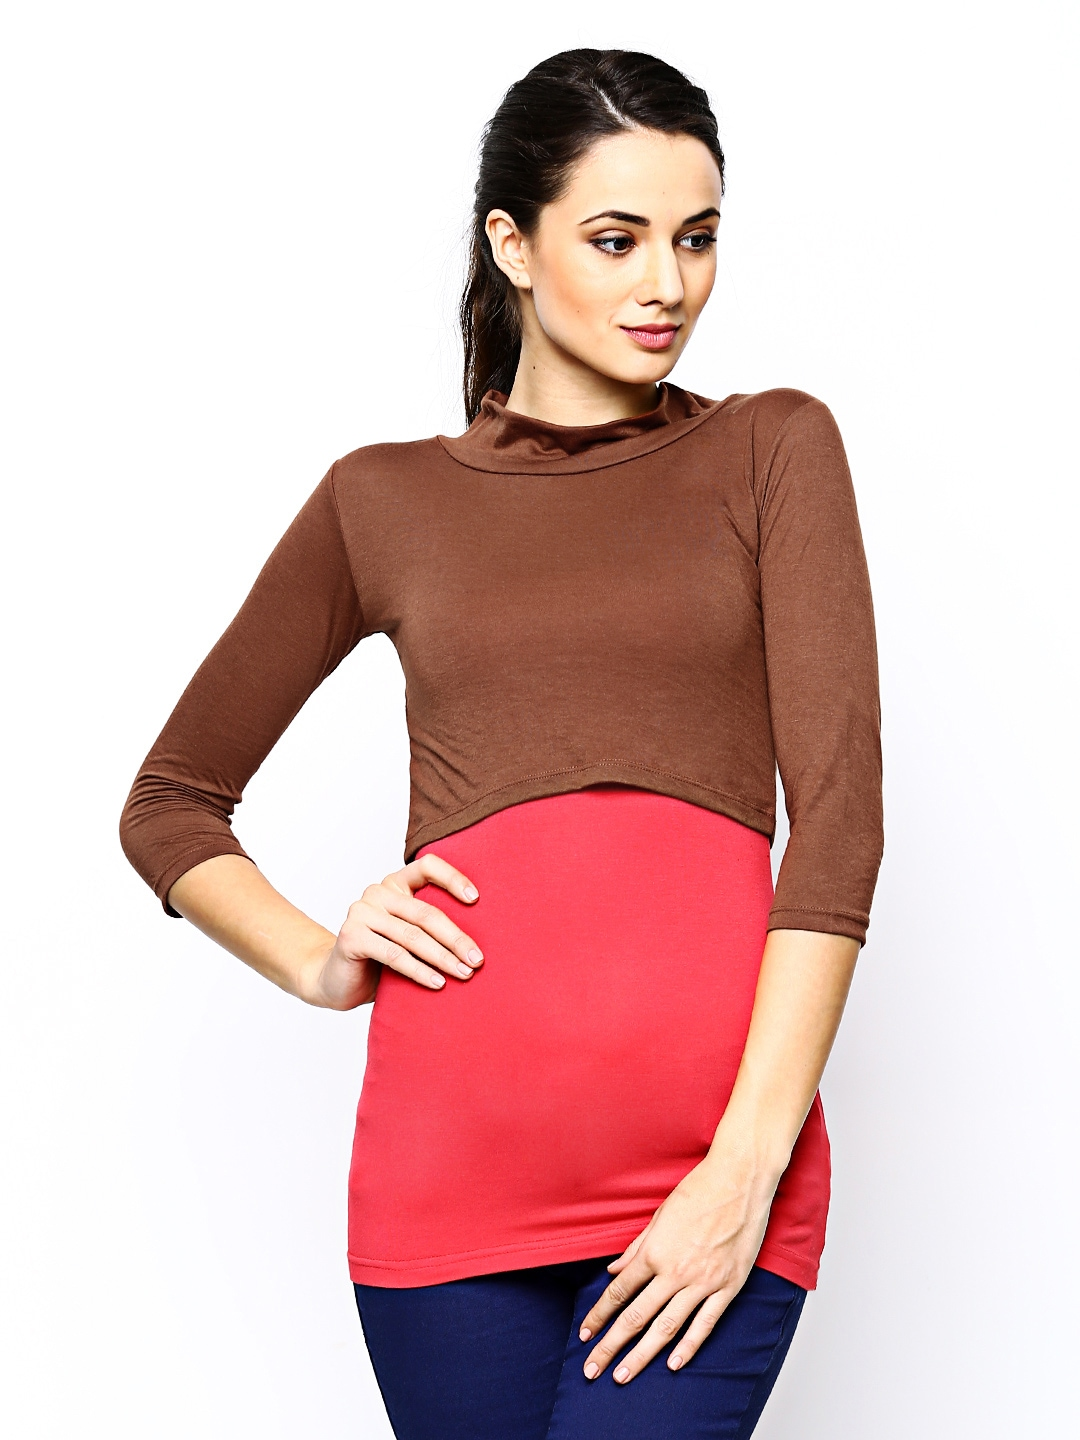 Shop for and buy crop top online at Macy's. Find crop top at Macy's.